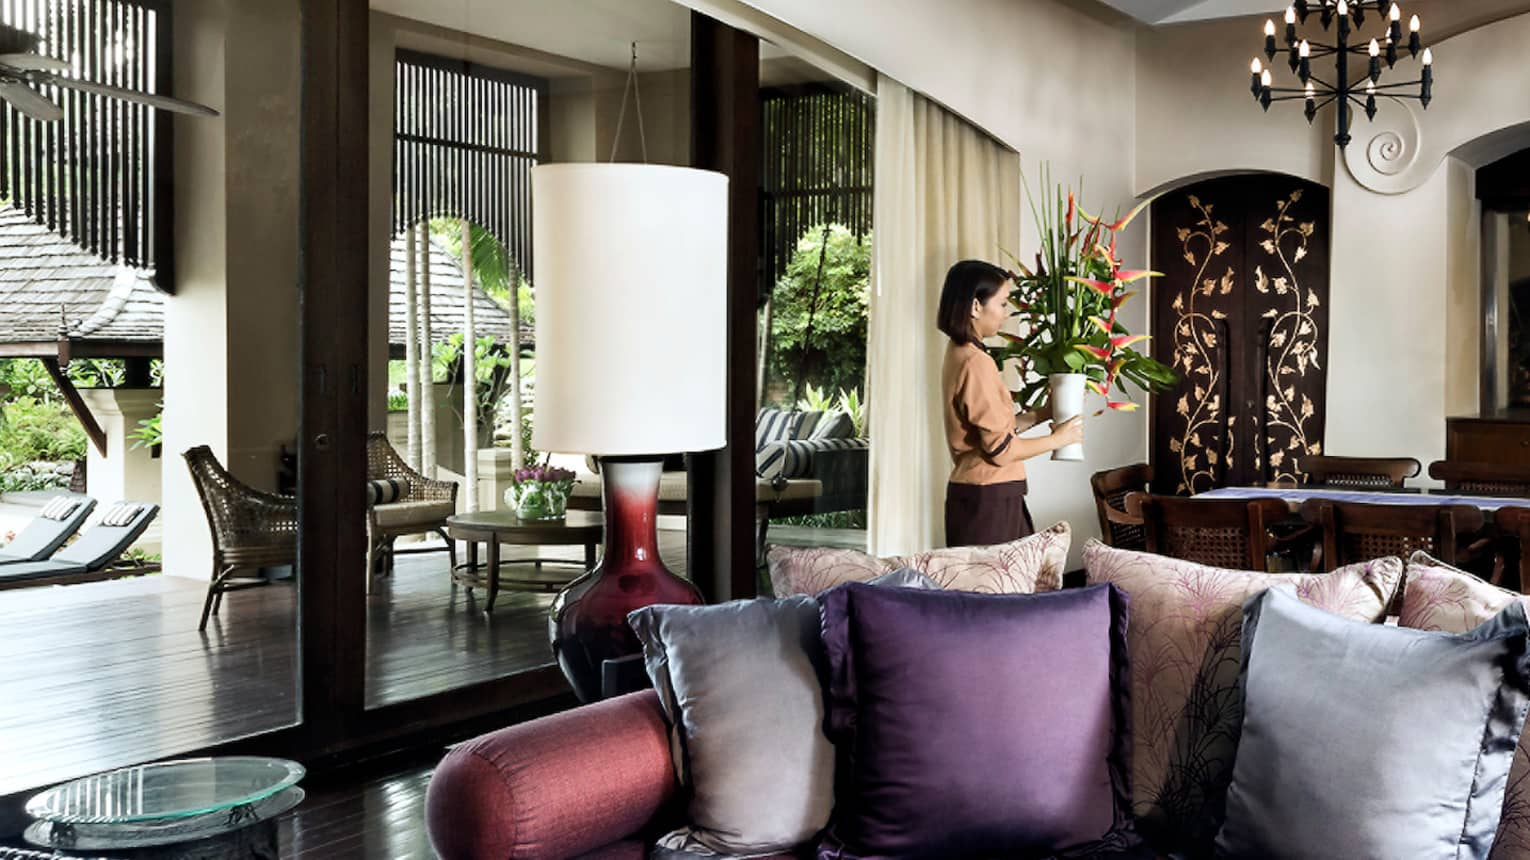 Hotel staff carries vase with tall tropical flowers past sofa, table in residence living room